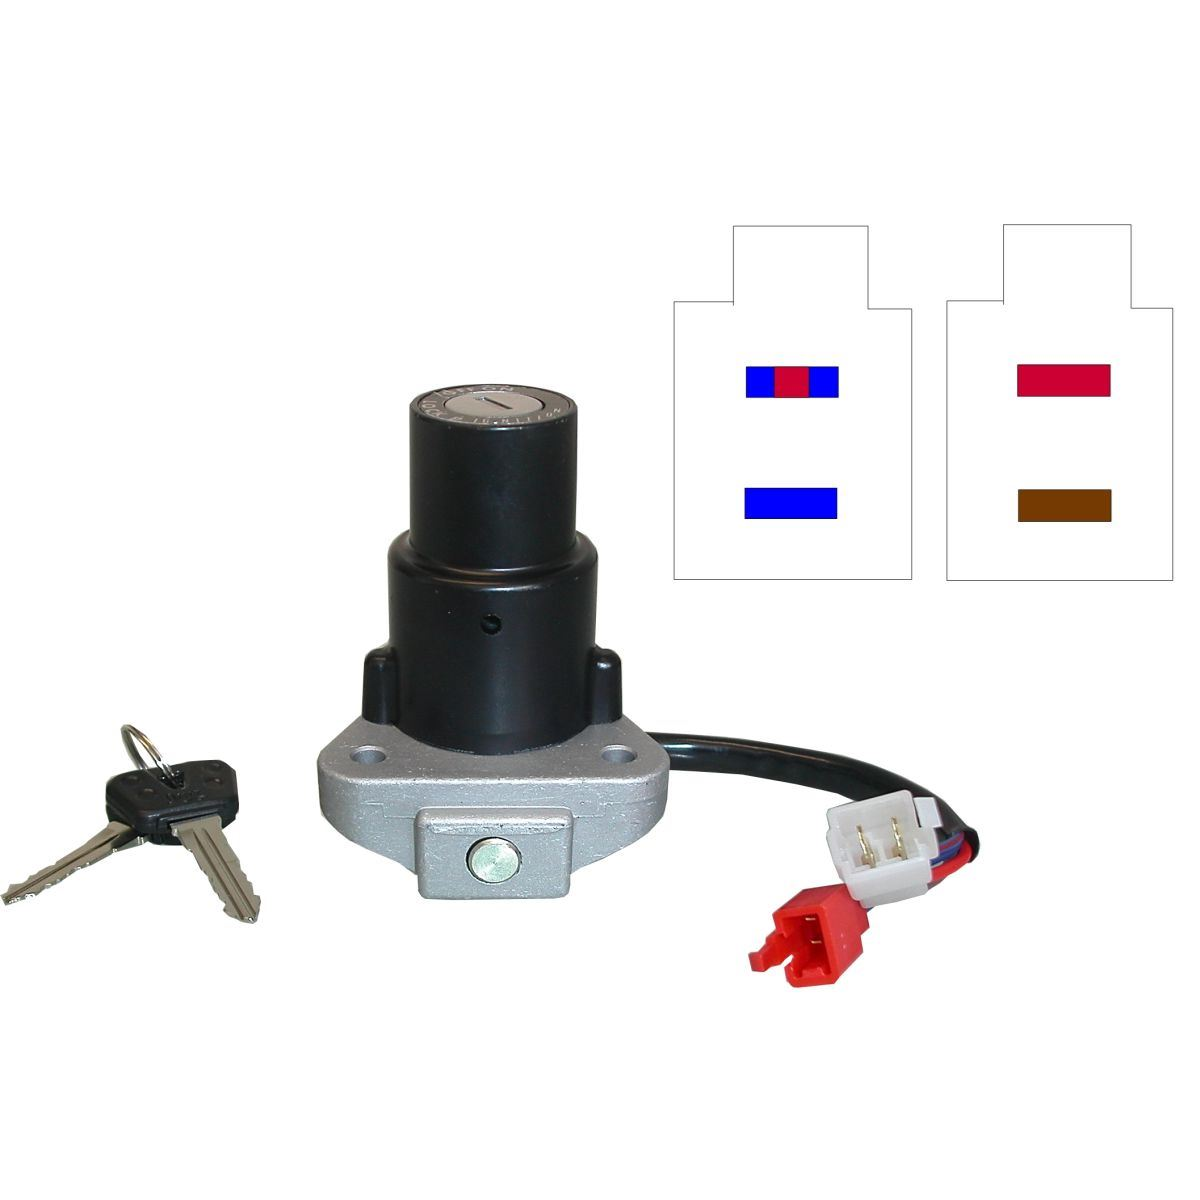 Aw Motorcycle Parts Ignition Switch Yamaha Xv750 Xv1000 Xv1100 4 Wire Wiring Picture Of Wires